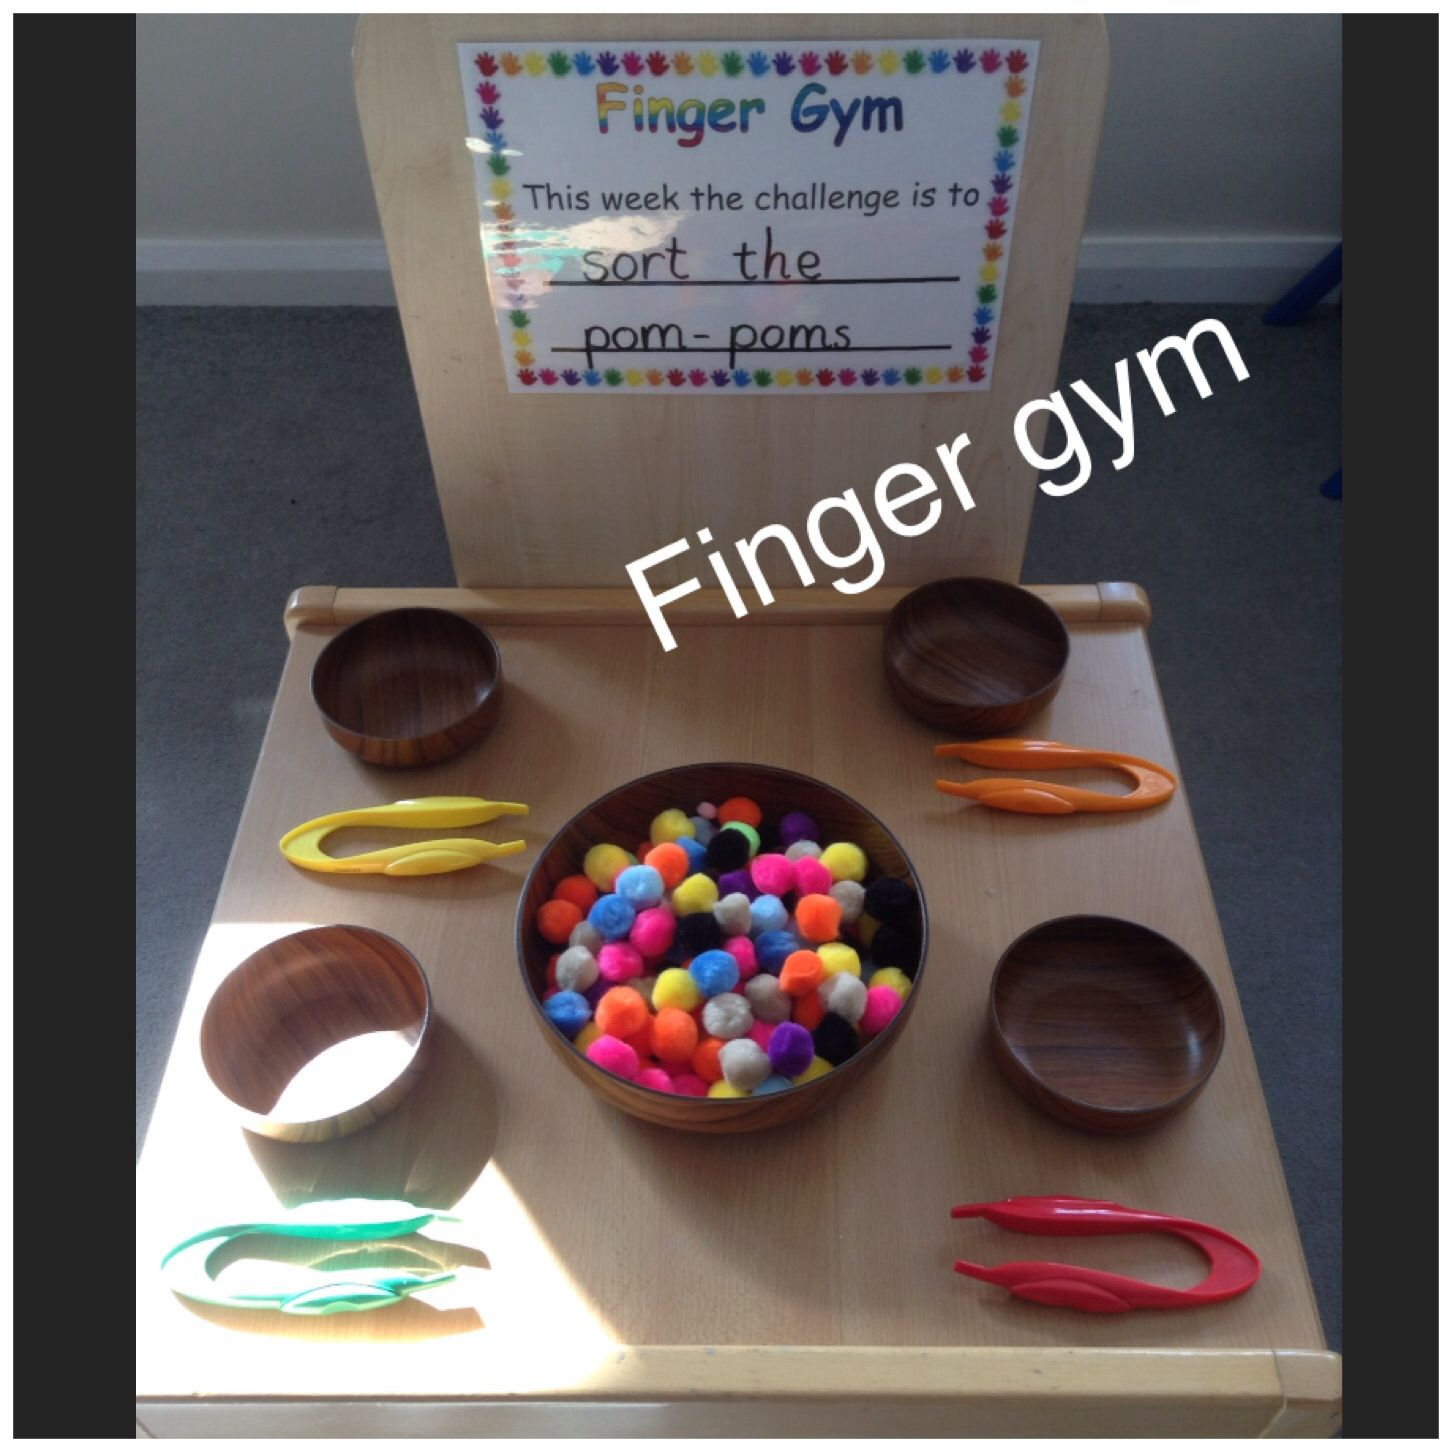 Finger Gym Developing Fine Motor Skills This Week The Children Will Use Tweezers To Sort And Fine Motor Skills Activities Motor Skills Activities Finger Gym